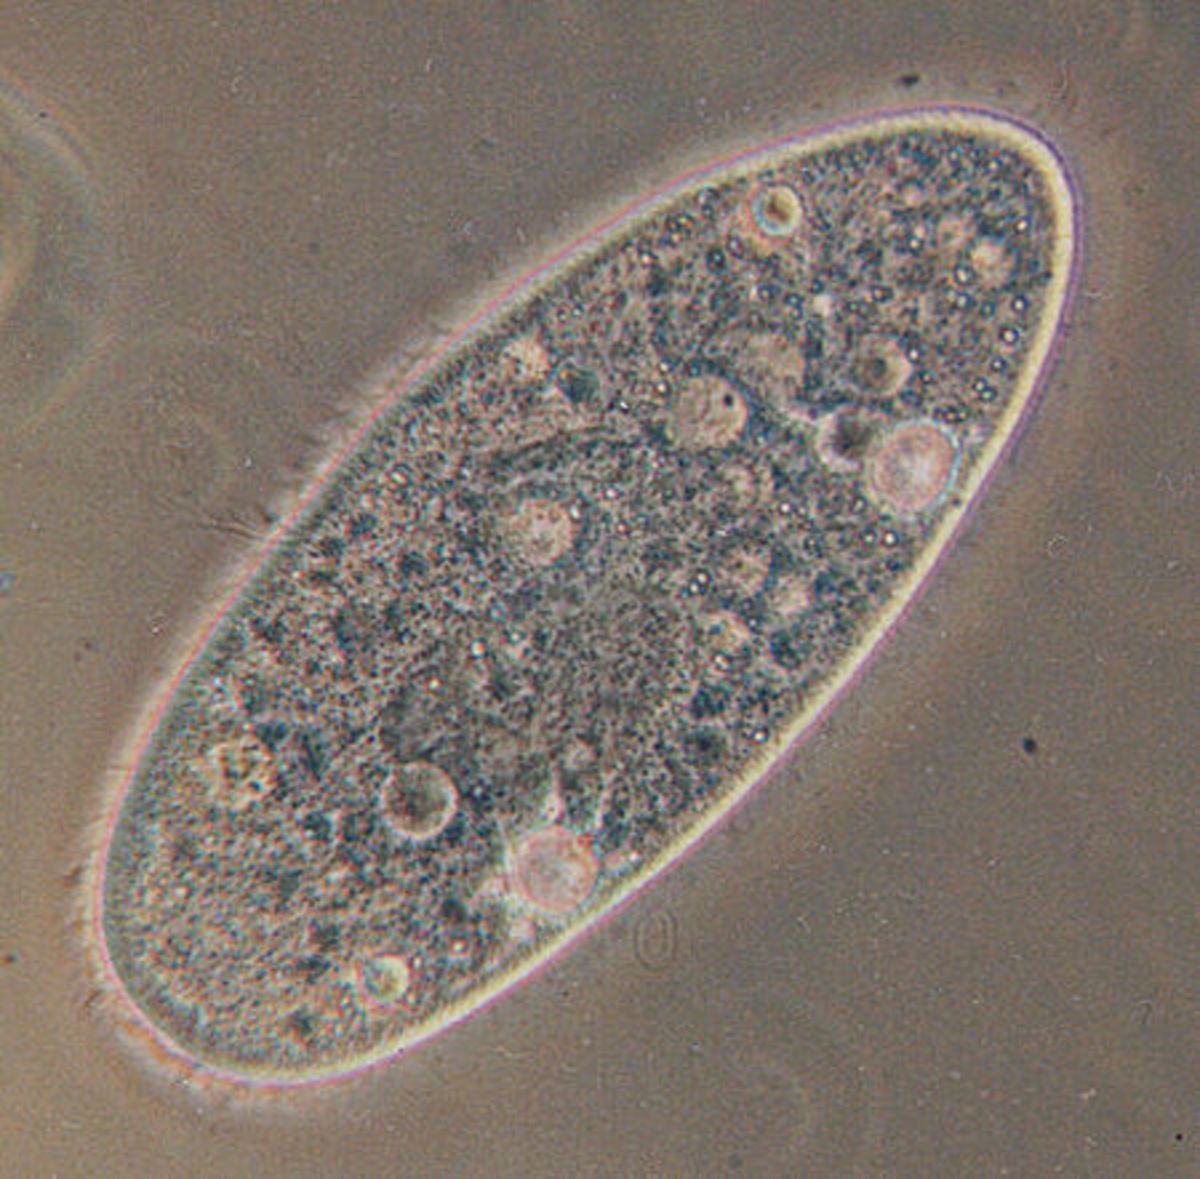 Paramecium - an example of a protoctist. This kingdom shows huge variety, as is more like the 'junk-drawer' of the classification system